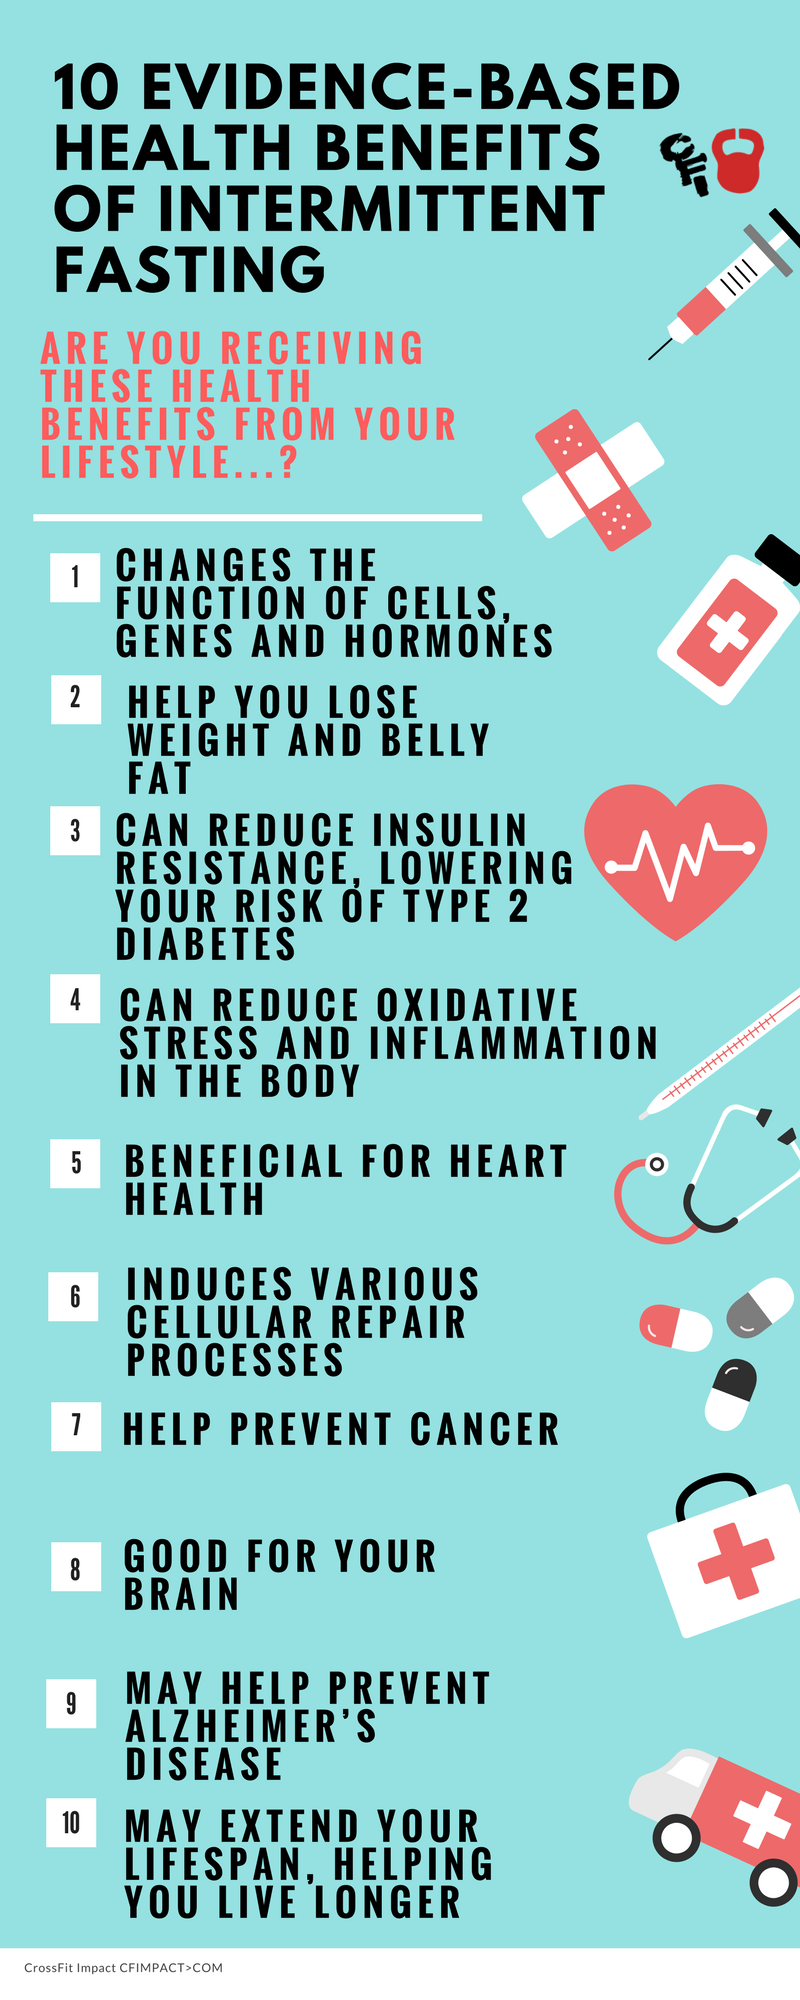 Evidence Based Health Benefits of Fasting